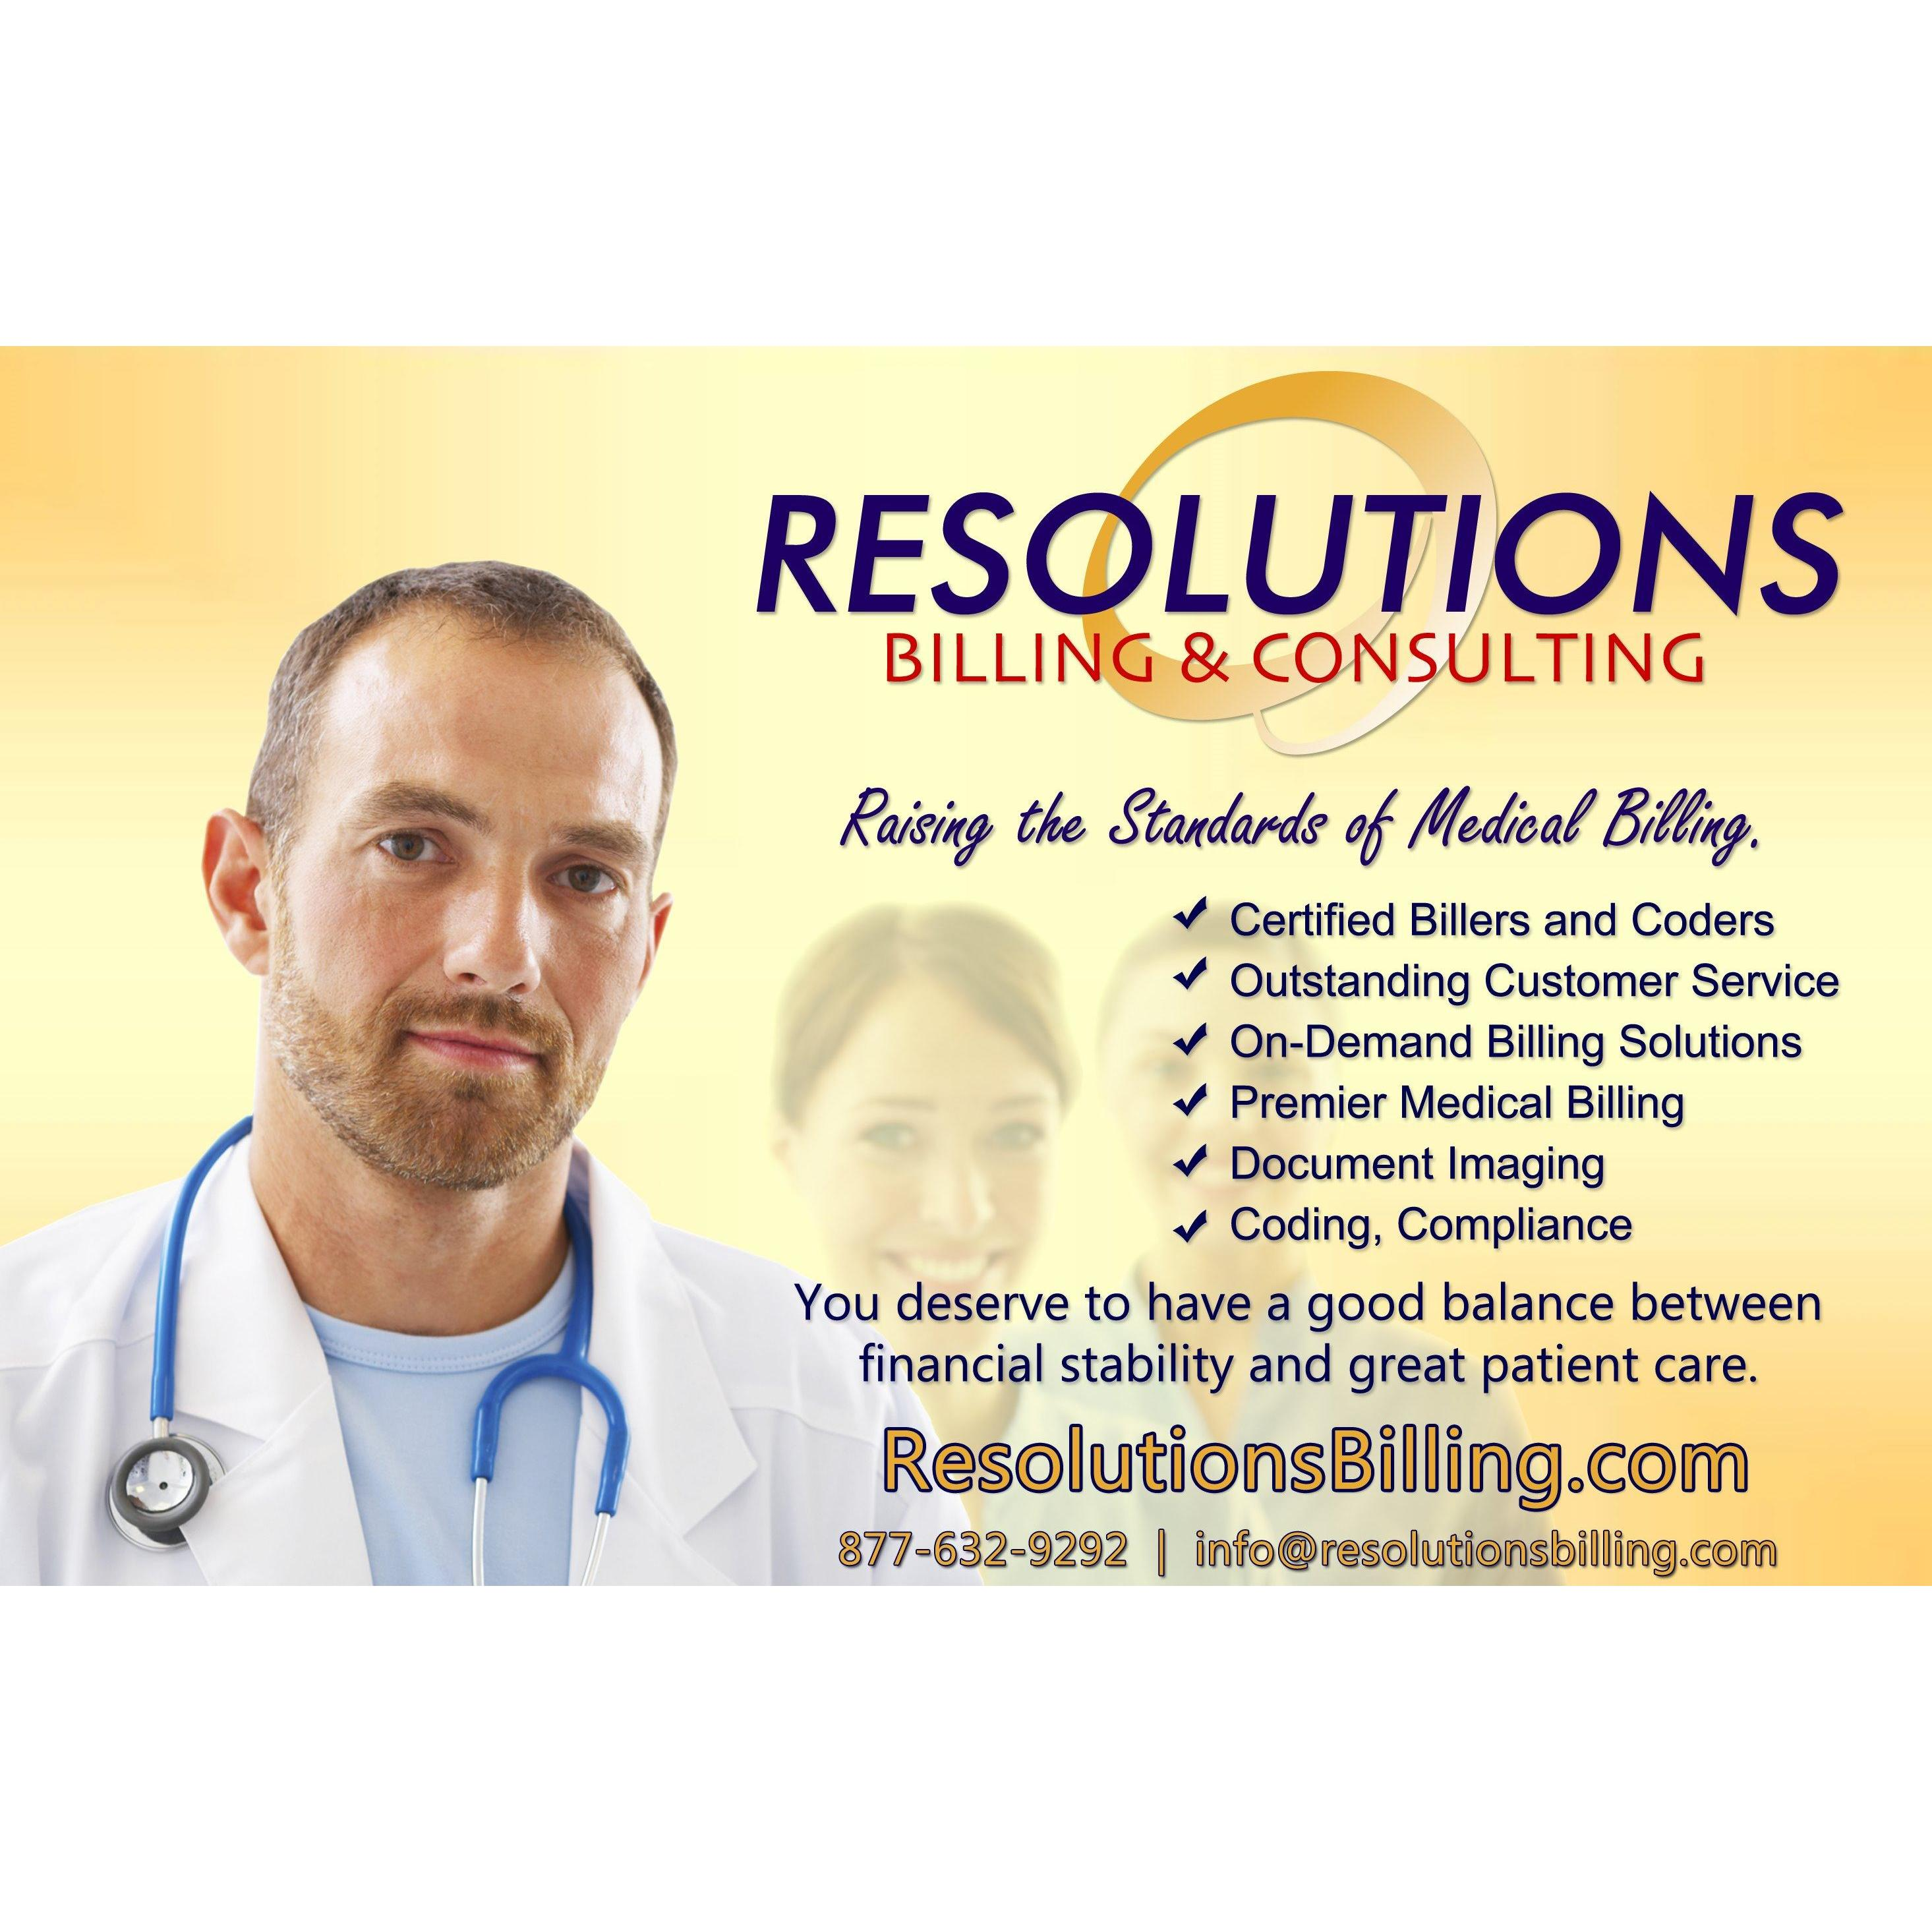 Resolutions Billing & Consulting